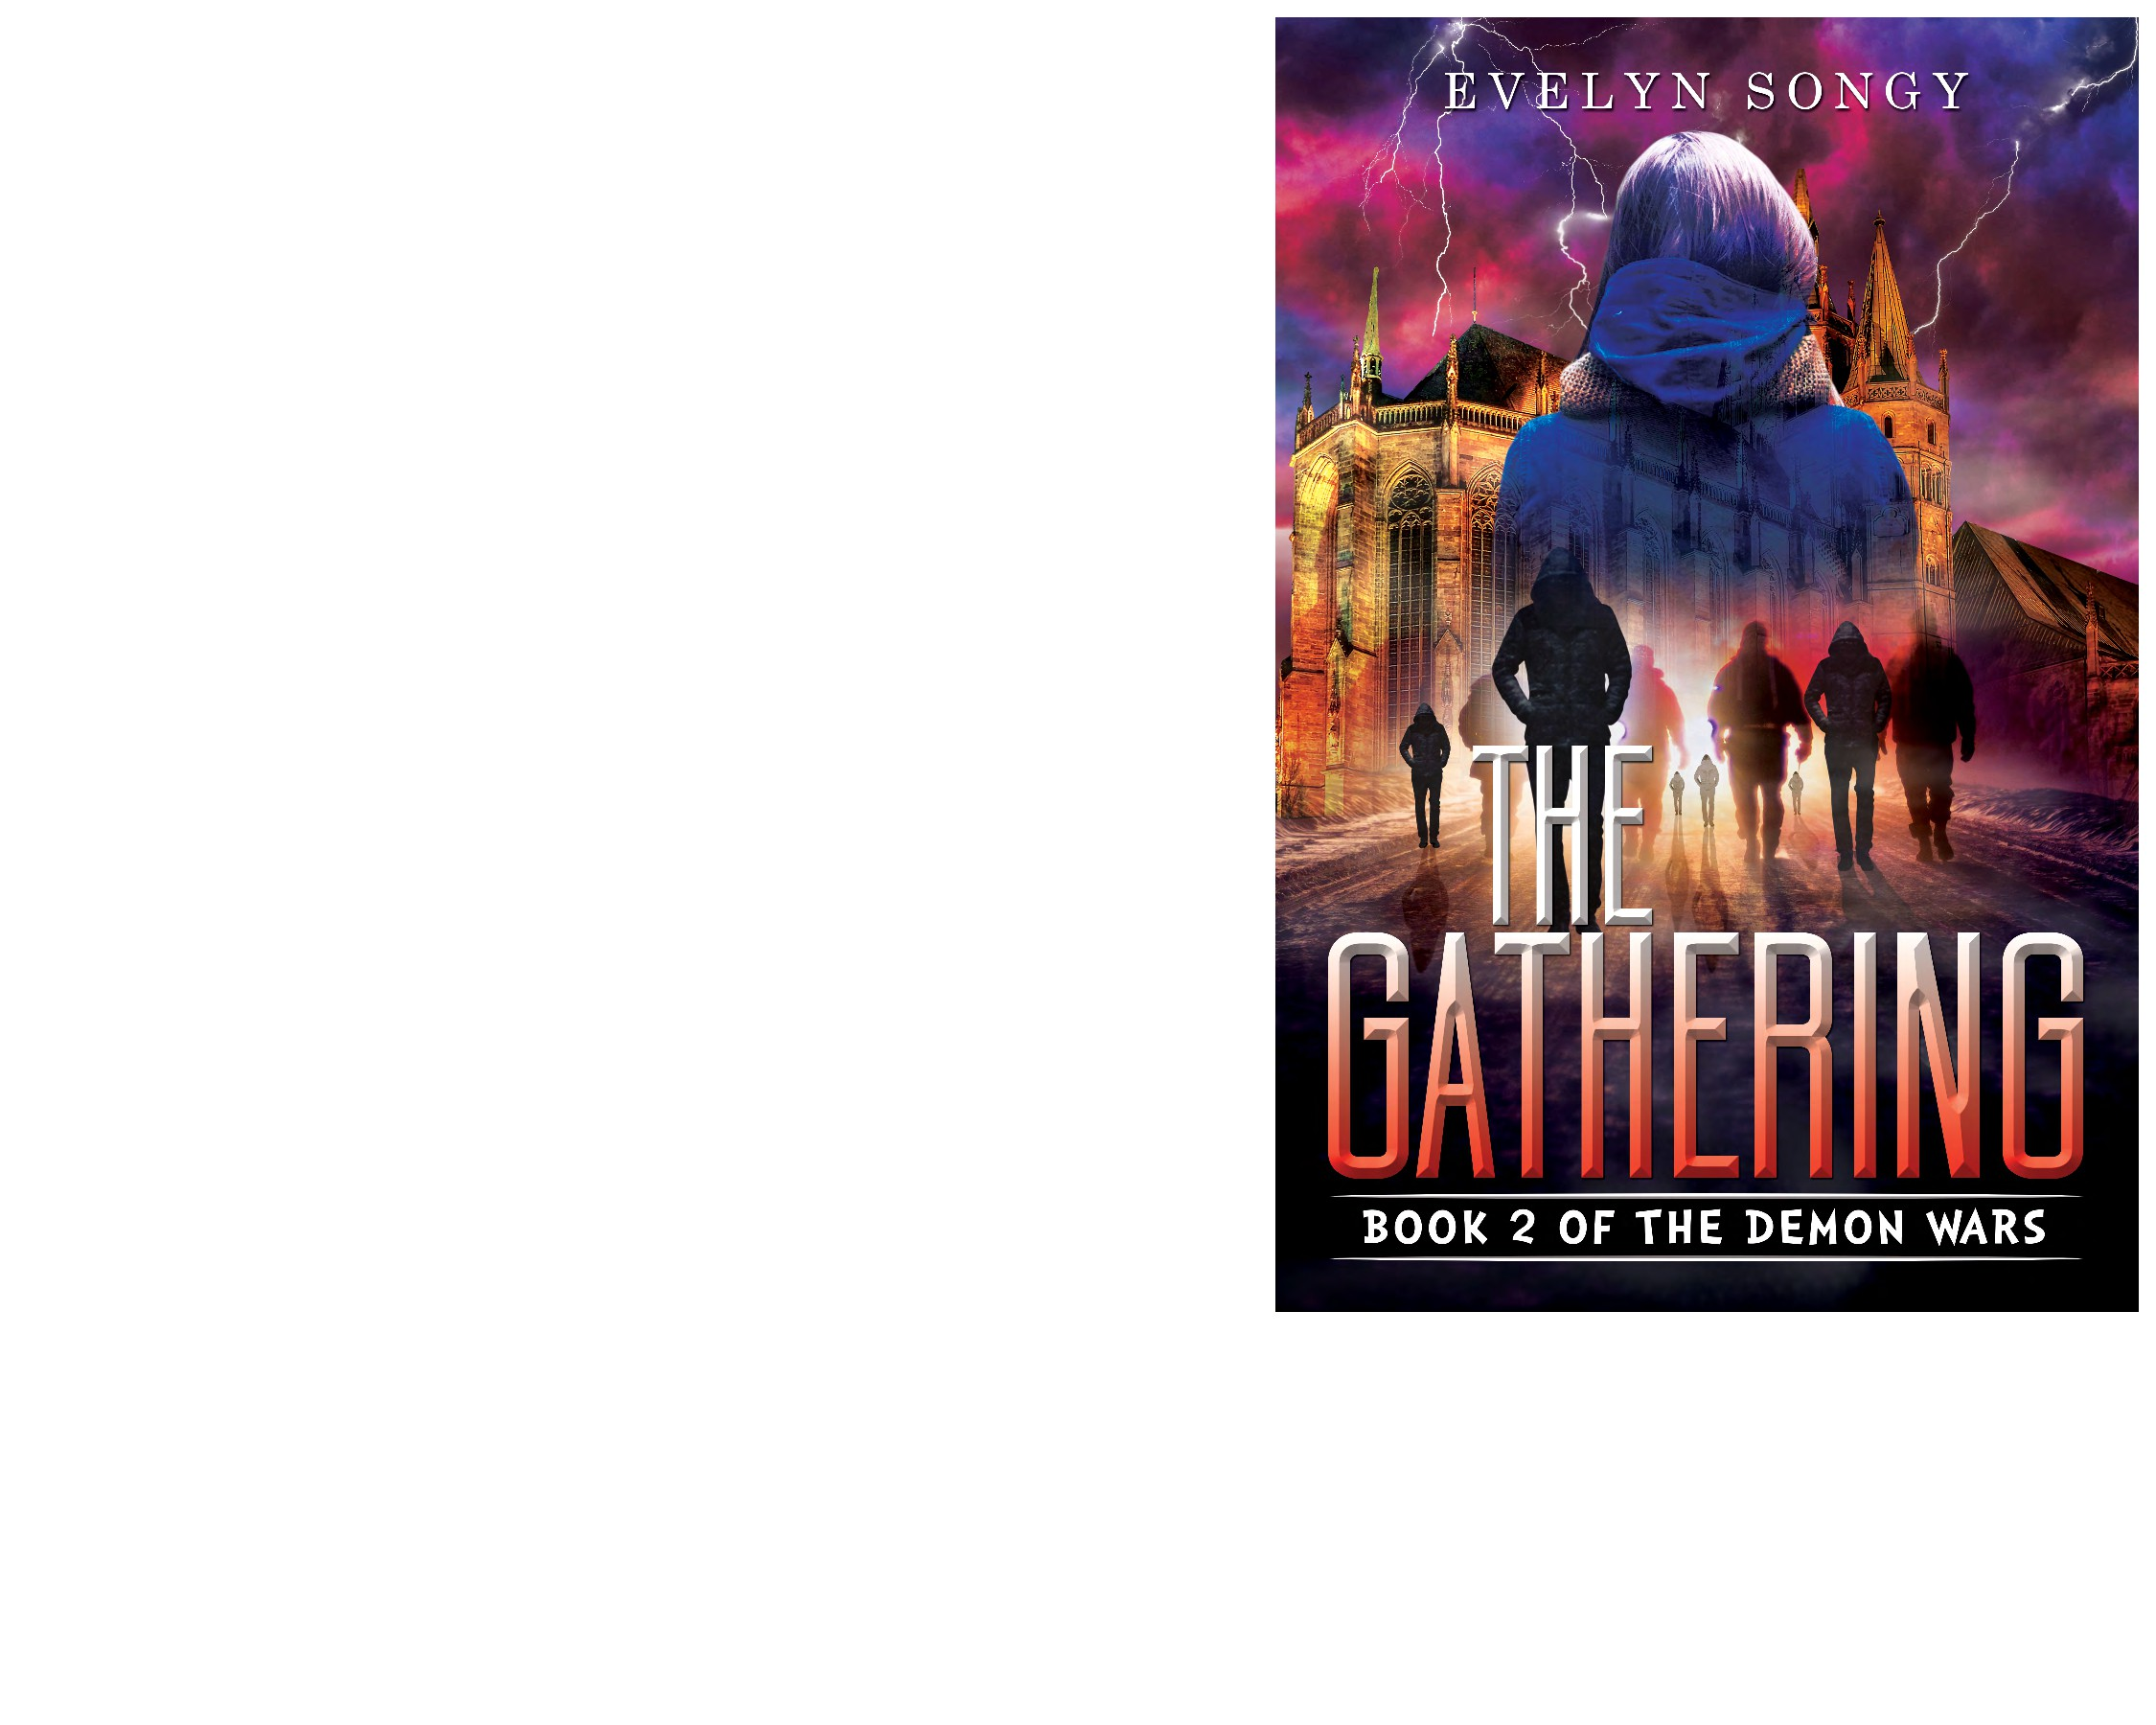 The Gathering Book 2 of The Demon Wars